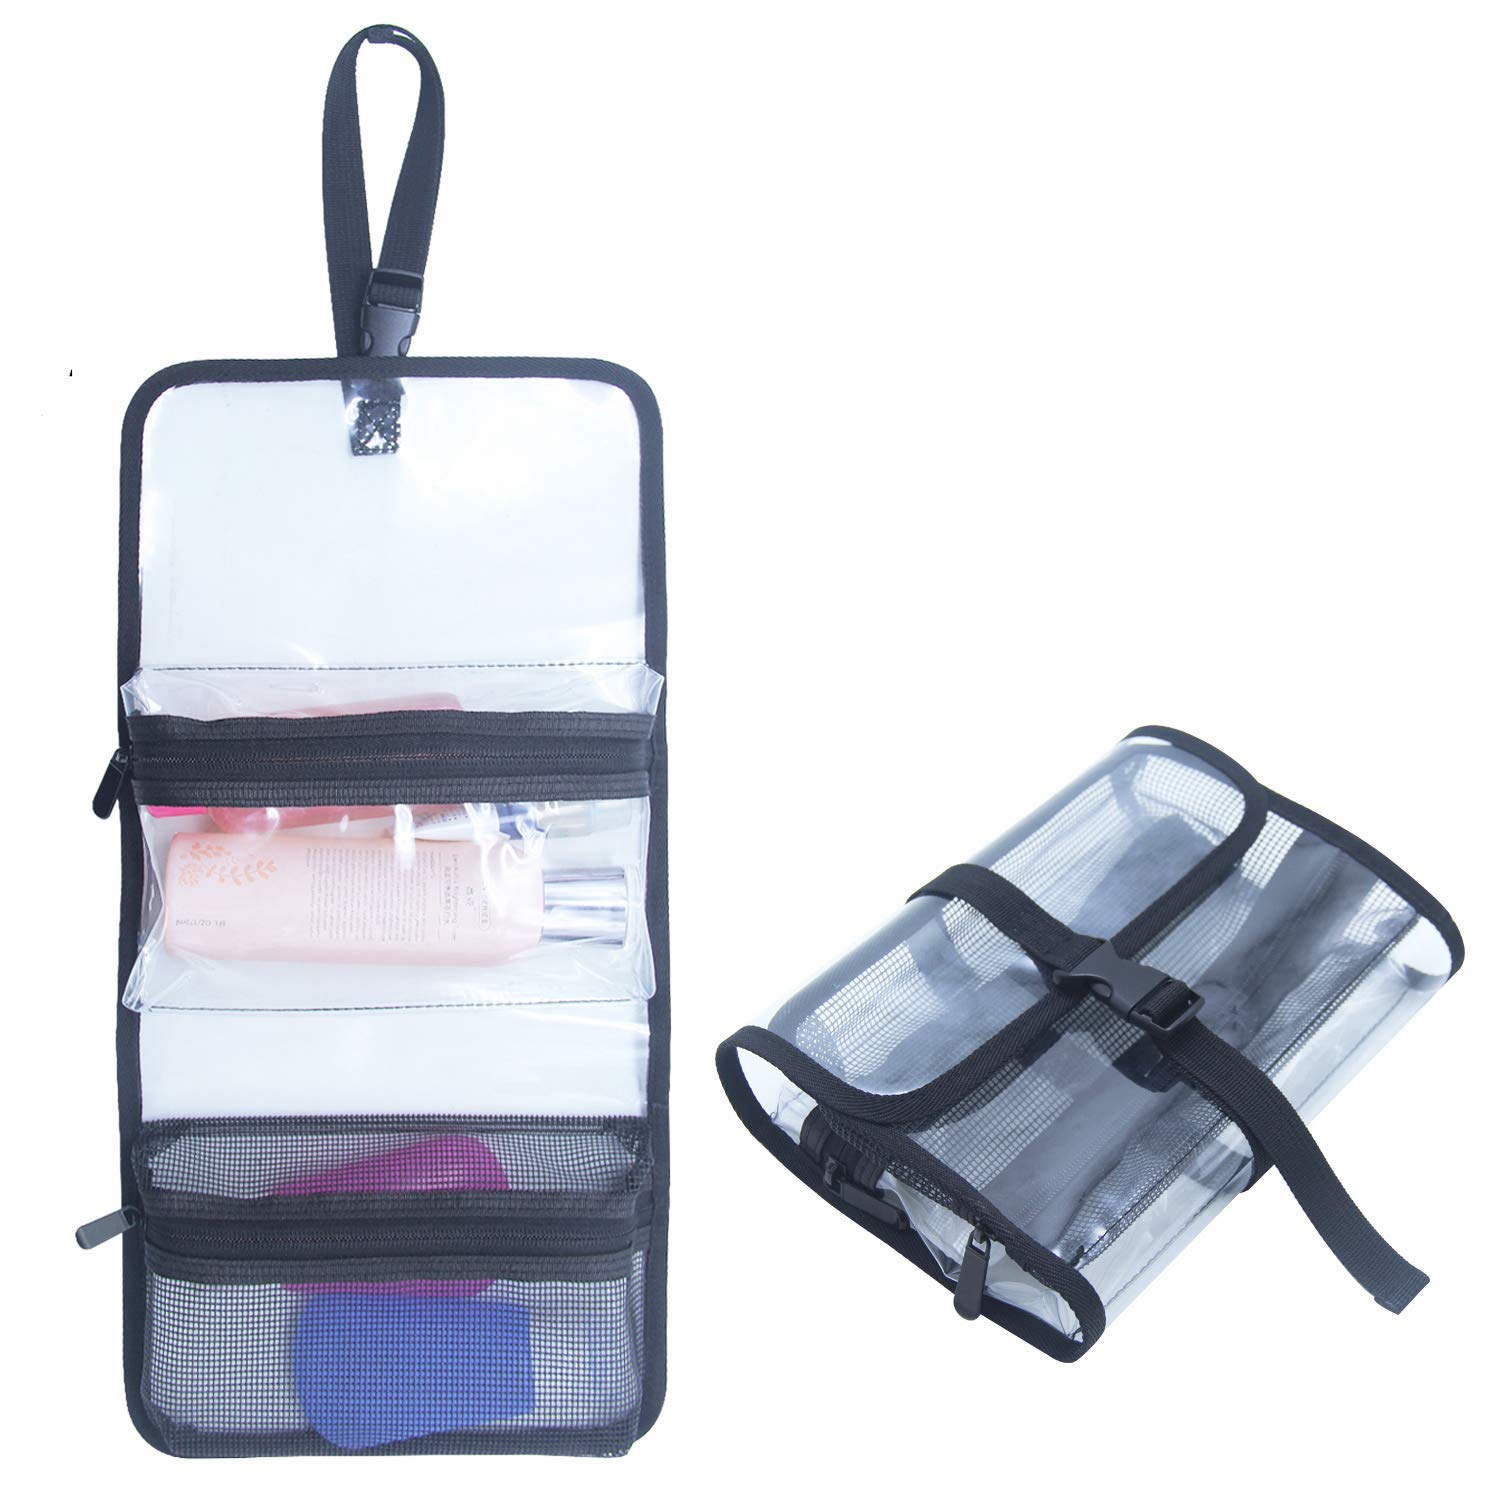 Get Quotations · TSA Approved Toiletry Bag Clear Travel Bag Cosmetic Bags  Makeup Organizer Bag Folding Travel Bag With a90cf5c8e2